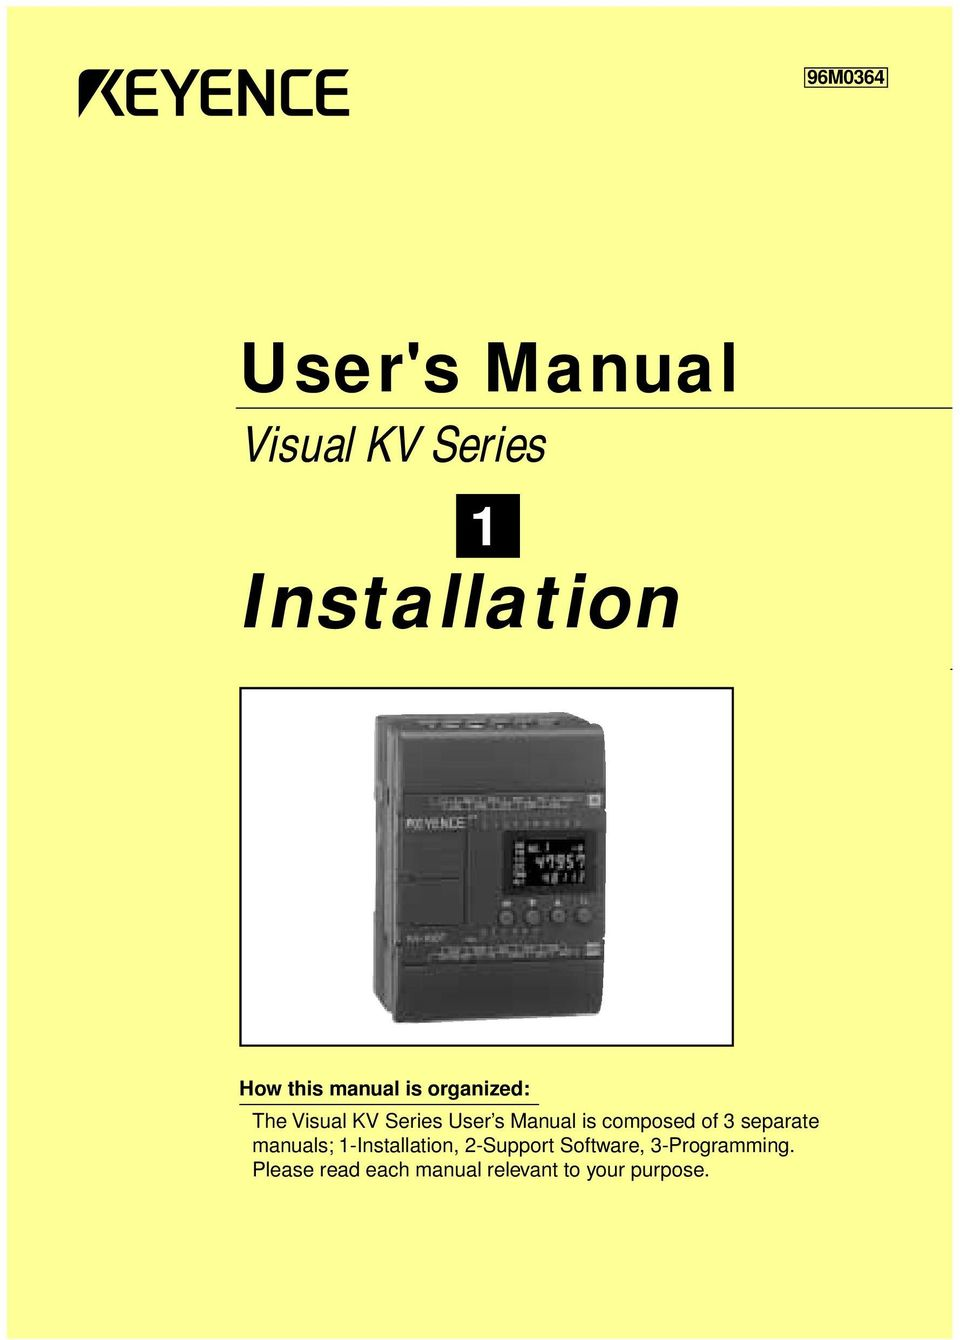 User's Manual Visual KV Series - PDF